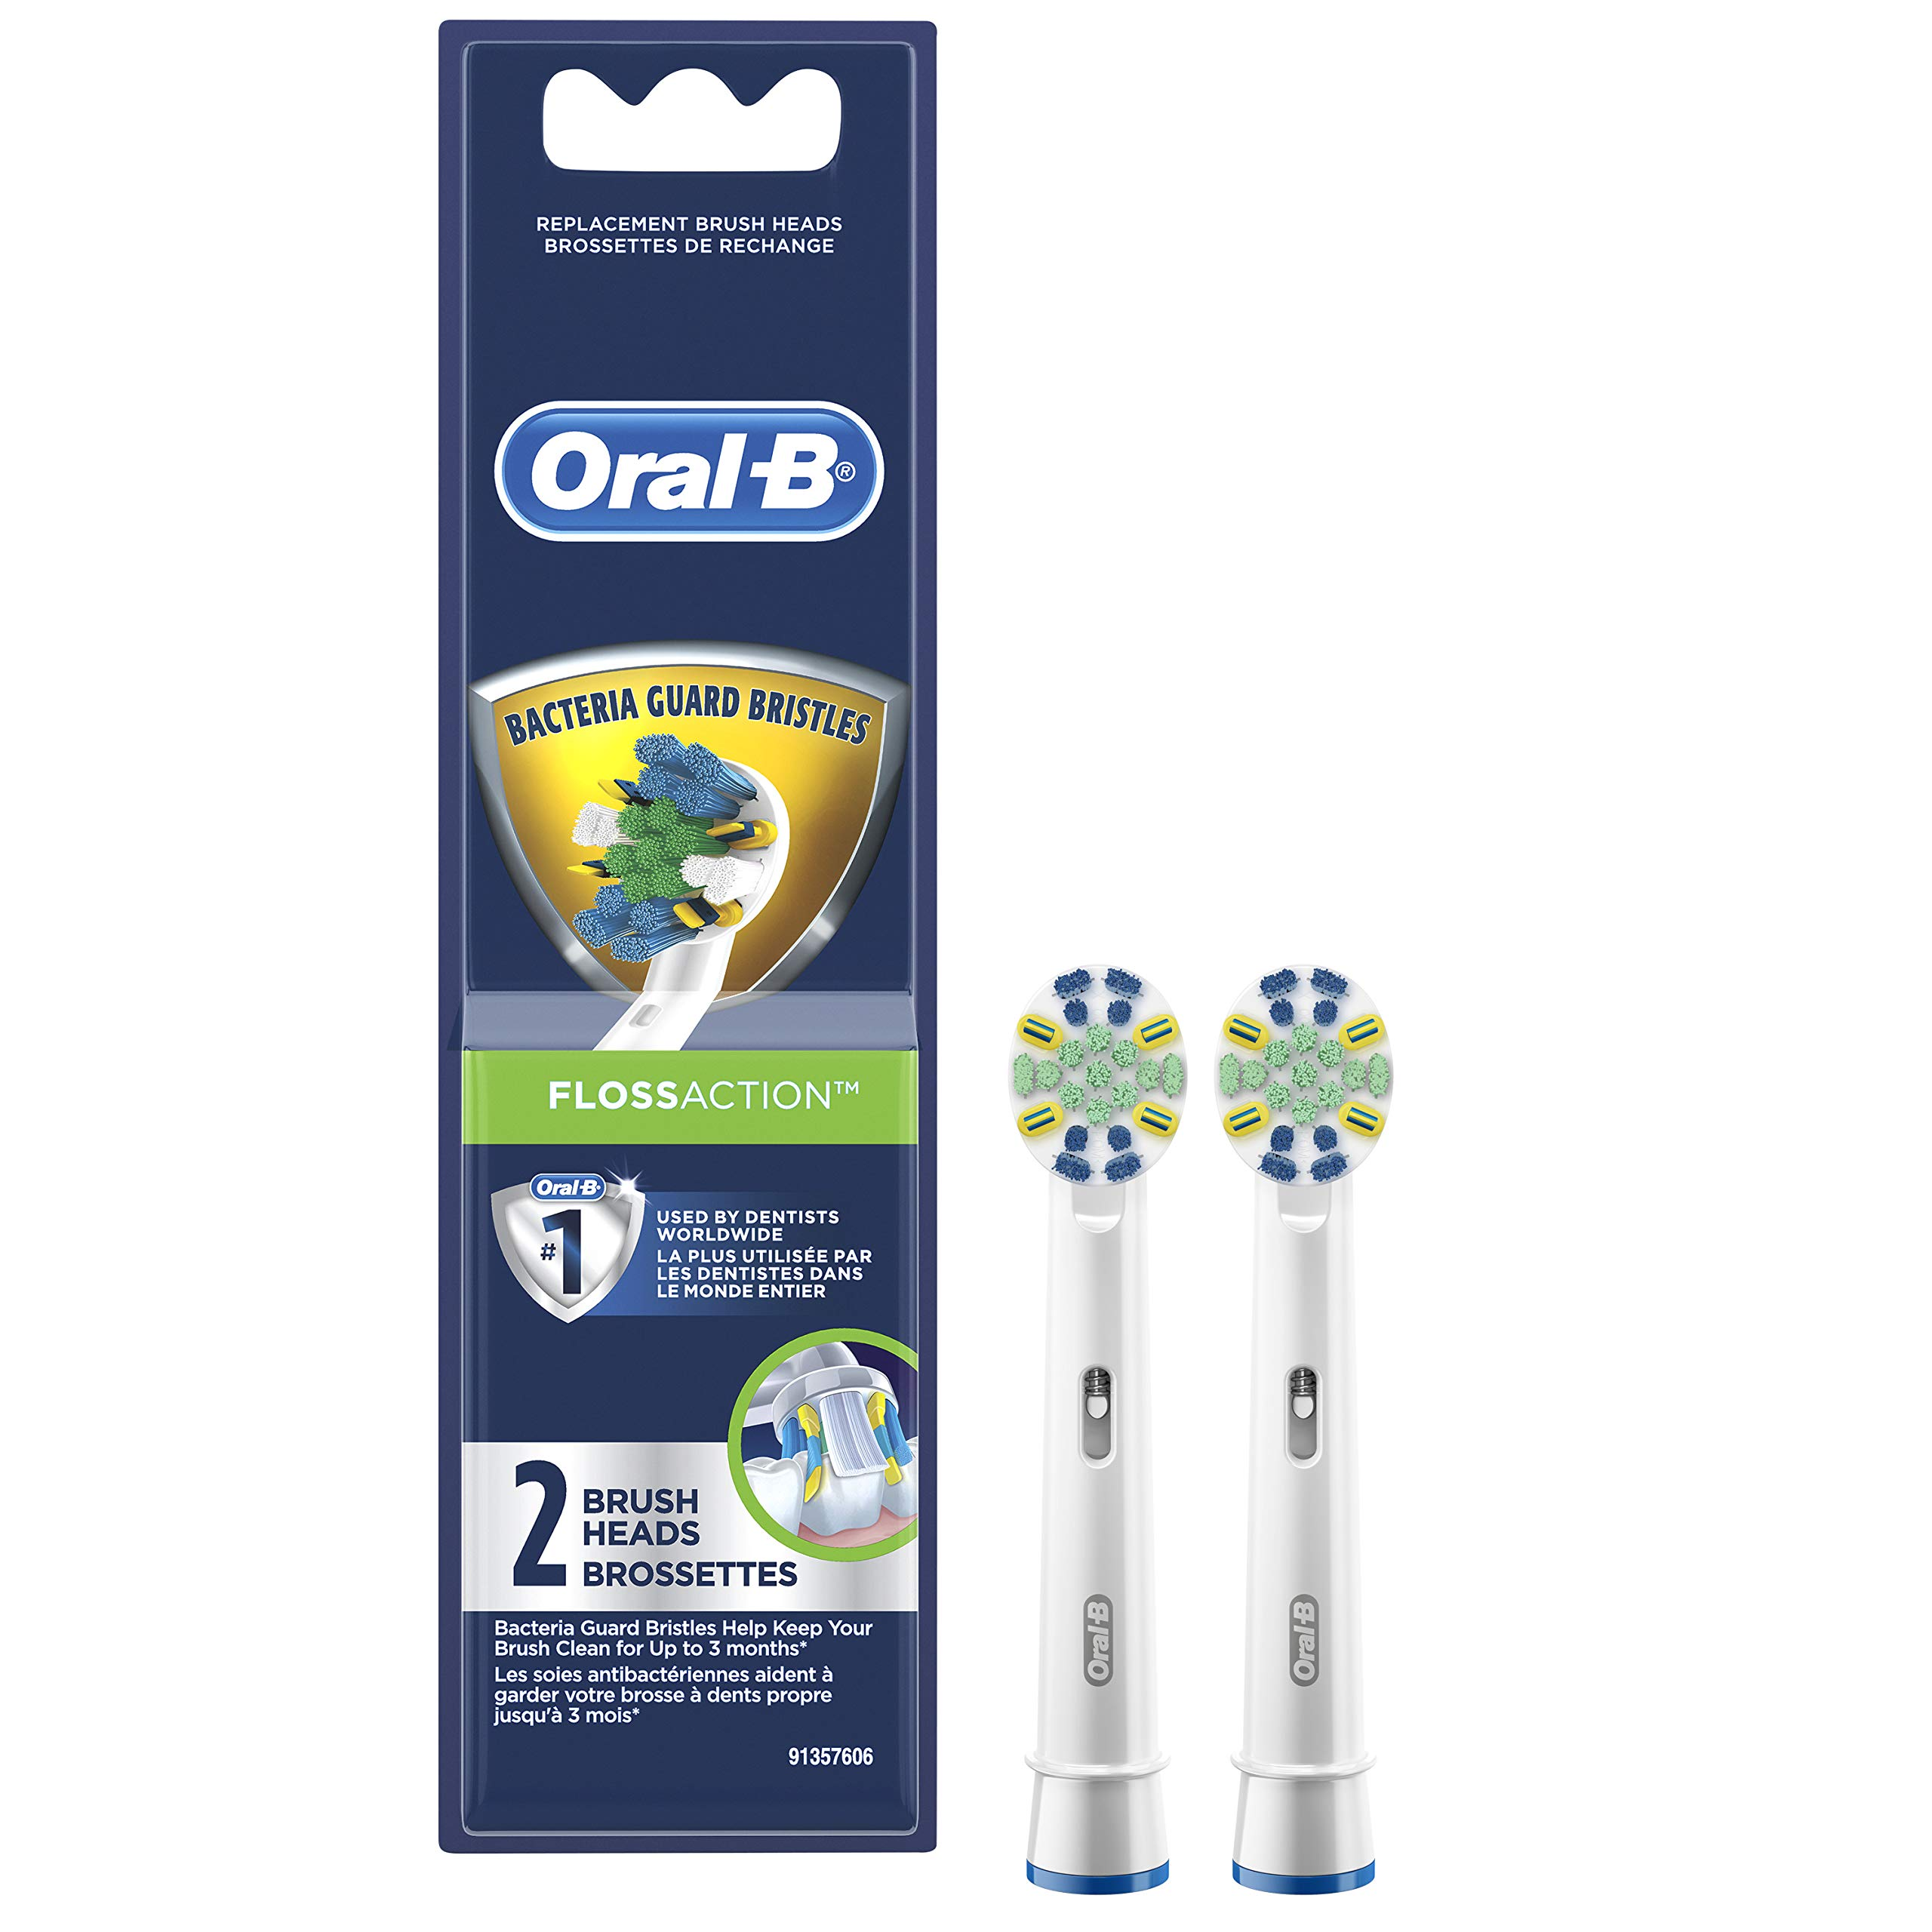 Oral-B Floss Action Electric Toothbrush Replacement Brush Heads Refill, 2 Count by Oral-B